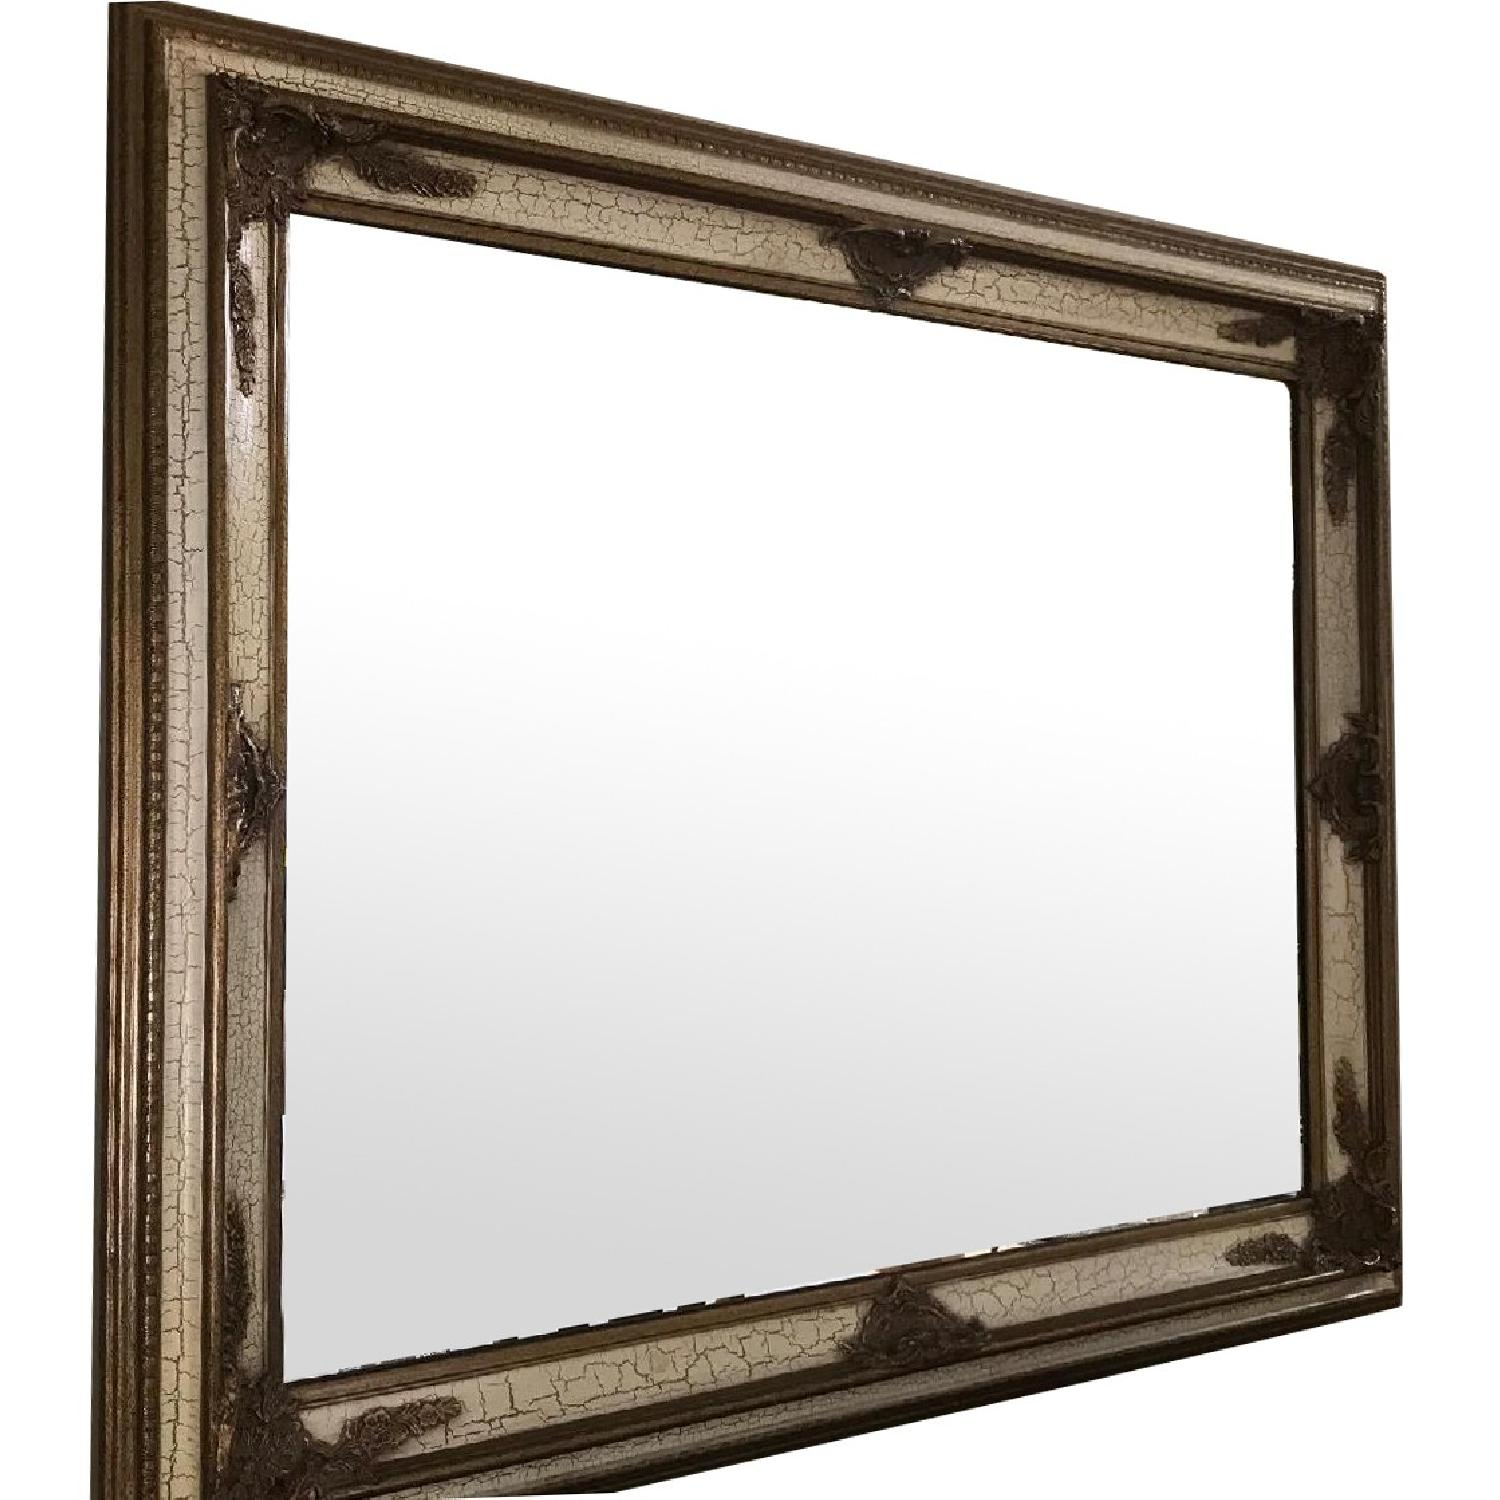 Large Mirror w/ Gold Scrolling & Crackle Design